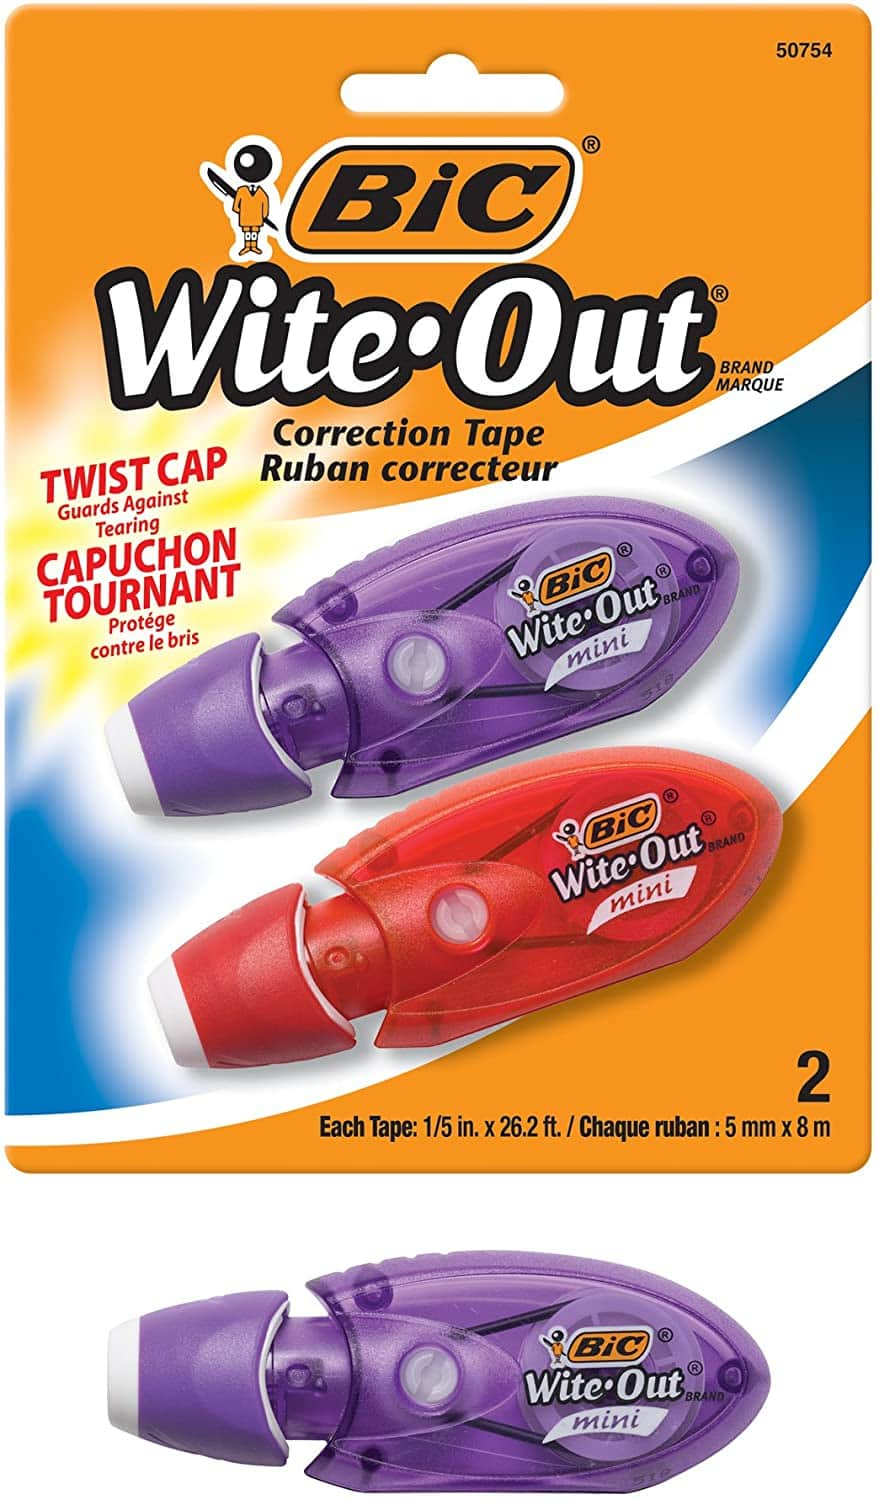 2-Count BIC Wite-Out Brand Mini Twist Correction Tape $2.47 + free shipping with Prime or on orders over $25